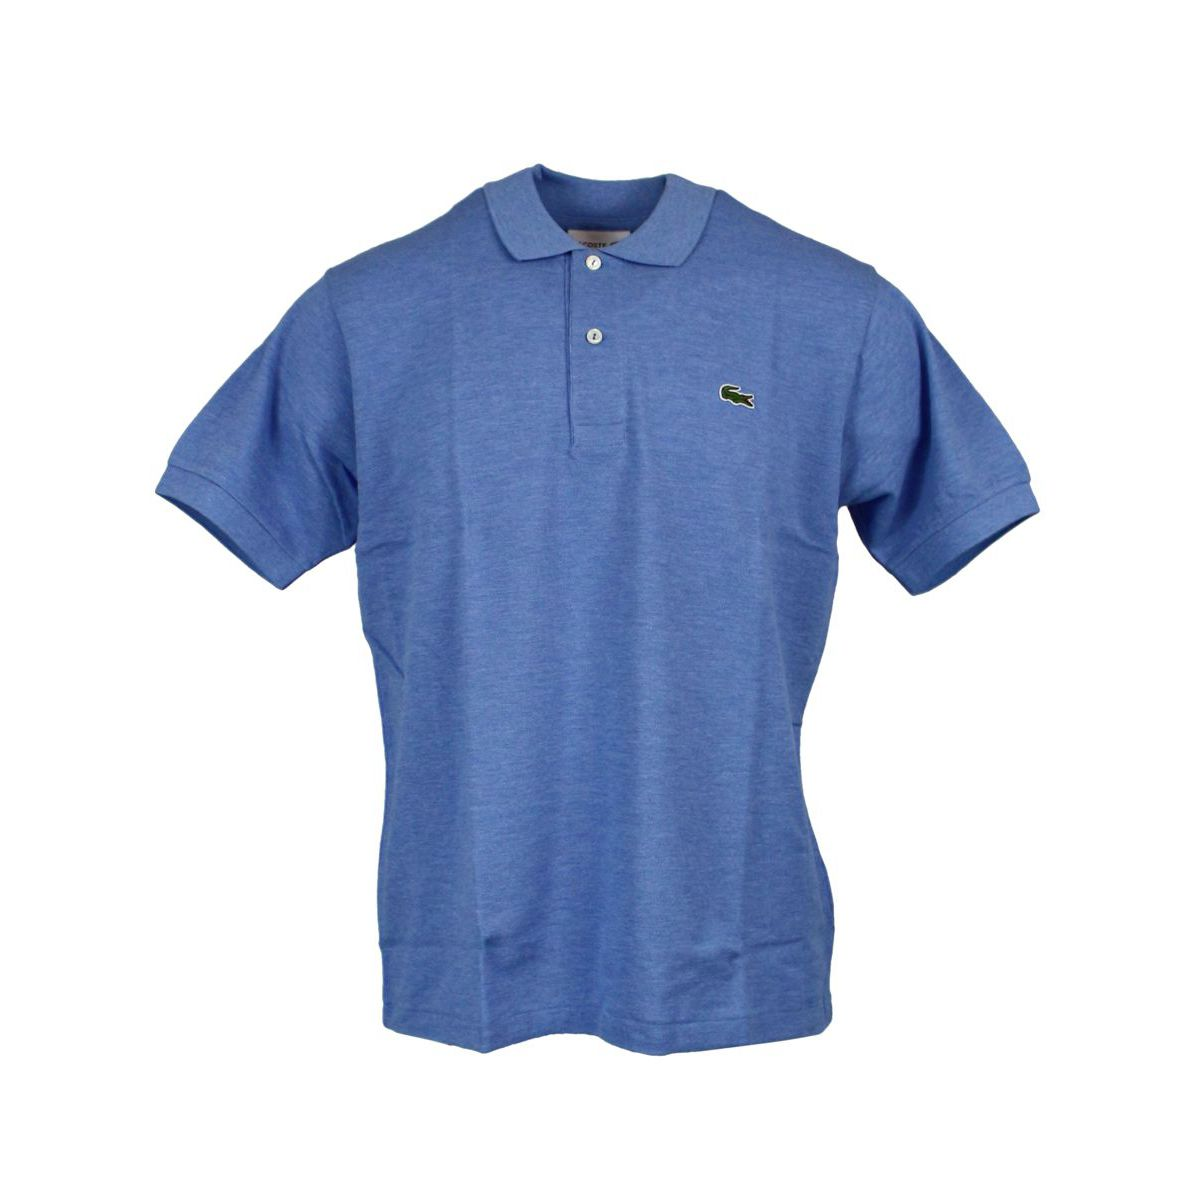 Cotton polo shirt with logo embroidery Light blue Lacoste